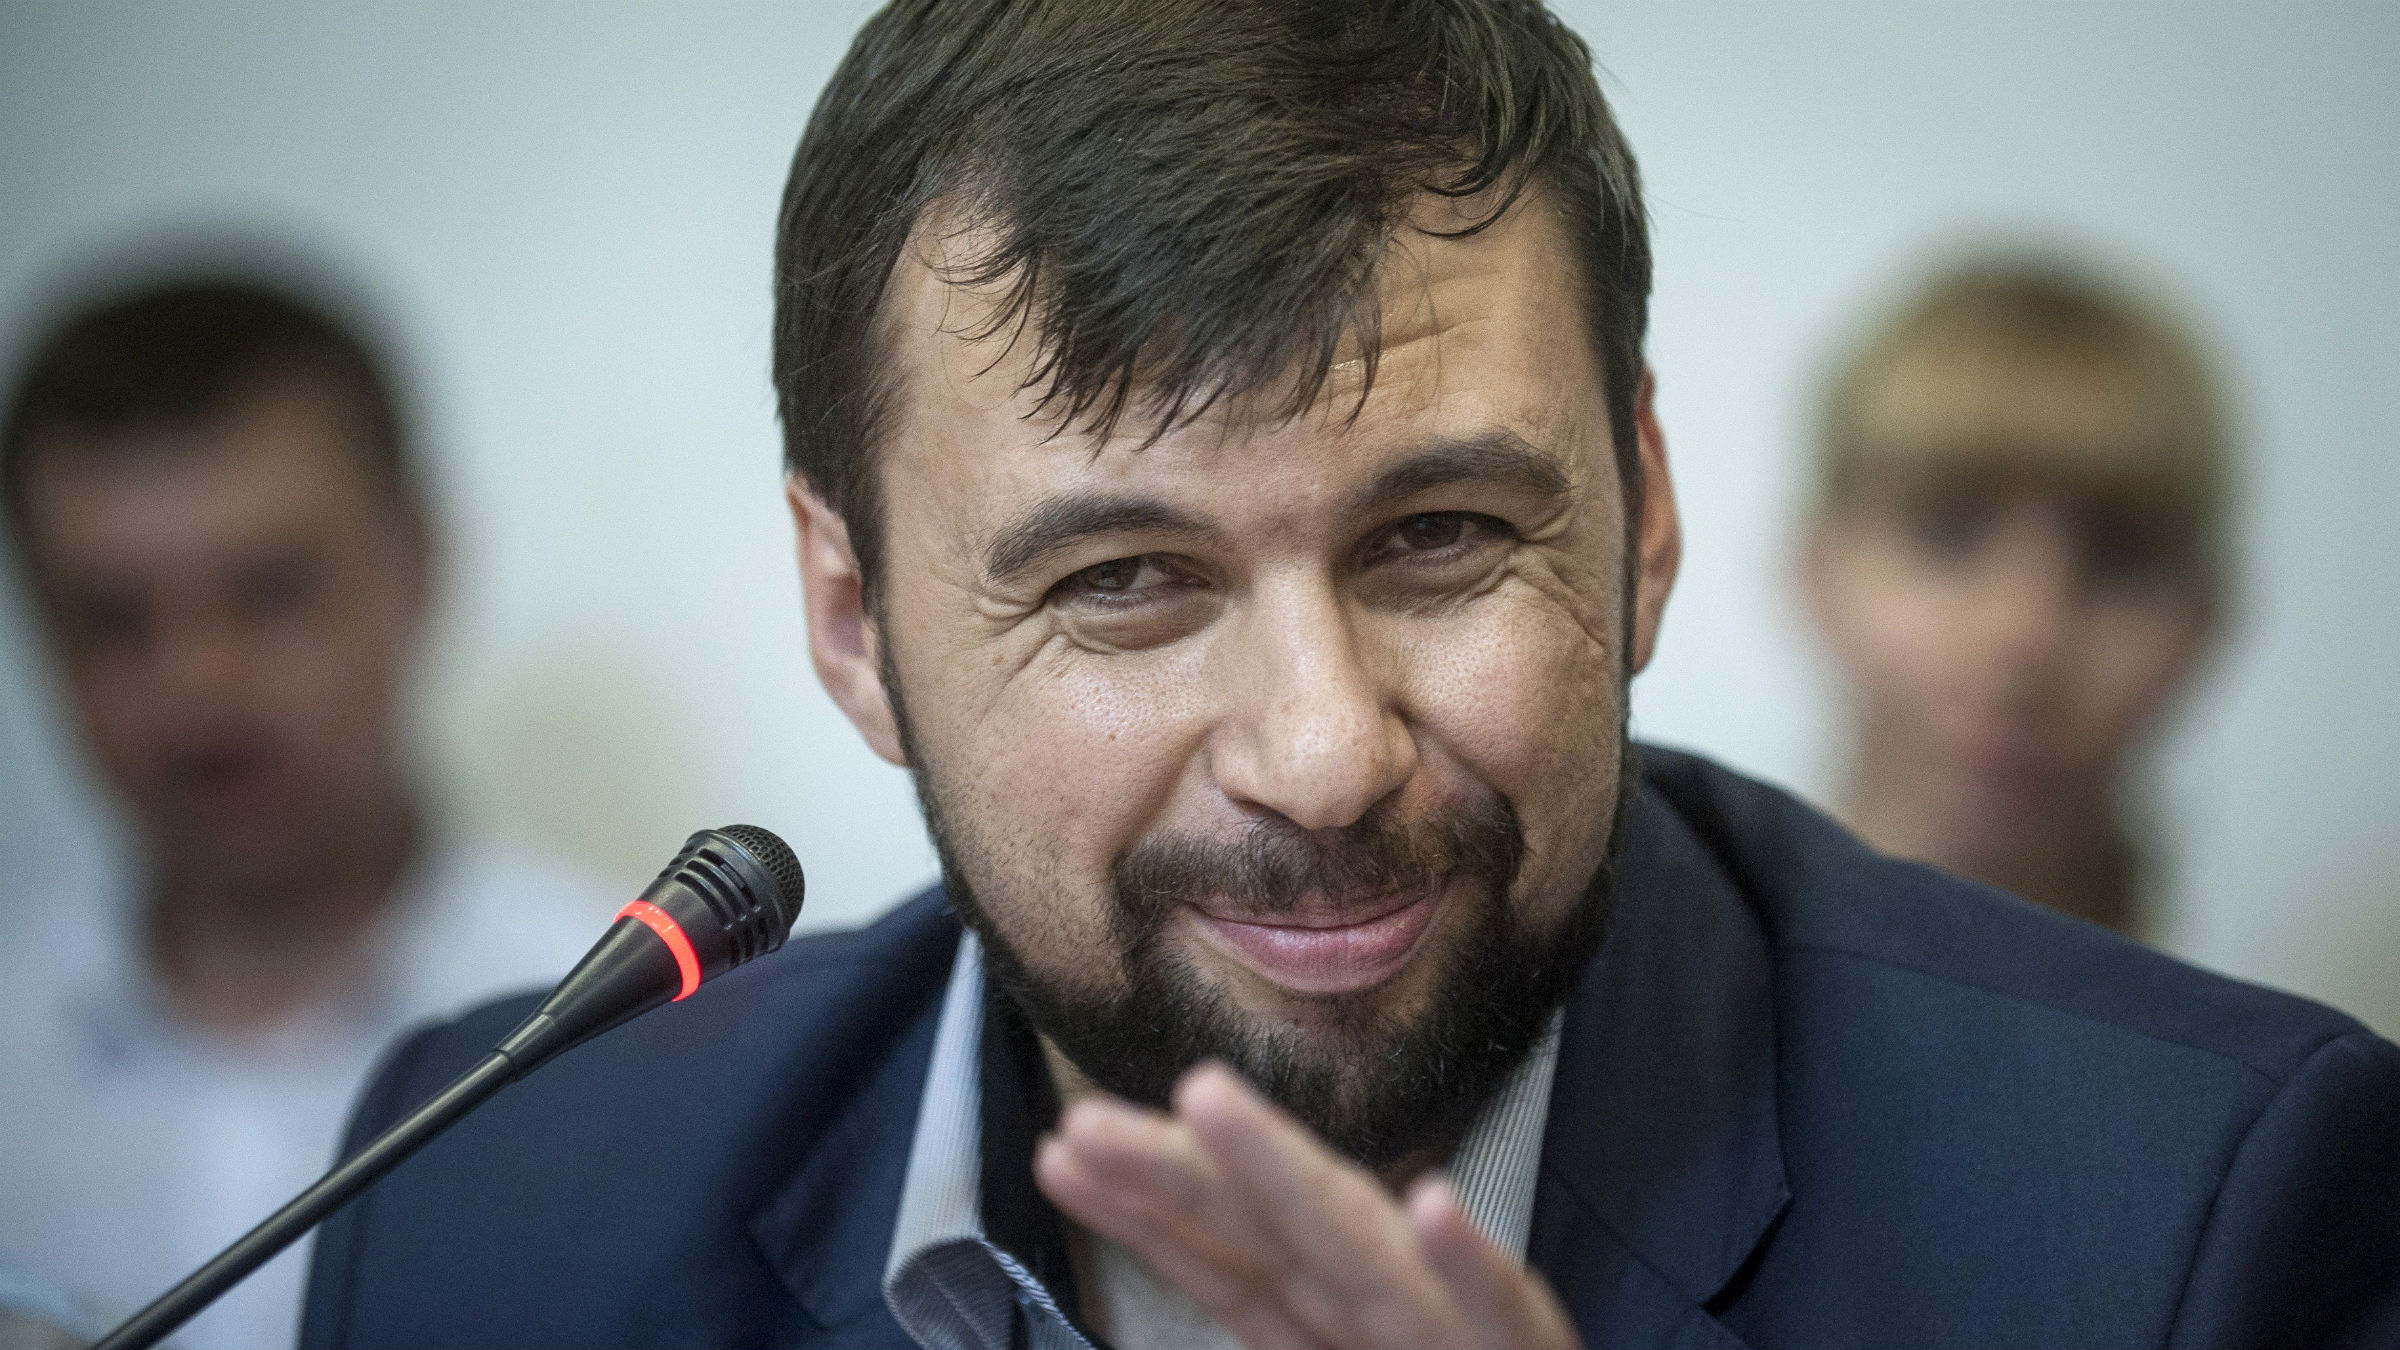 Photo of Denis Pushilin, leader of Donetsk People's Republic separatists.